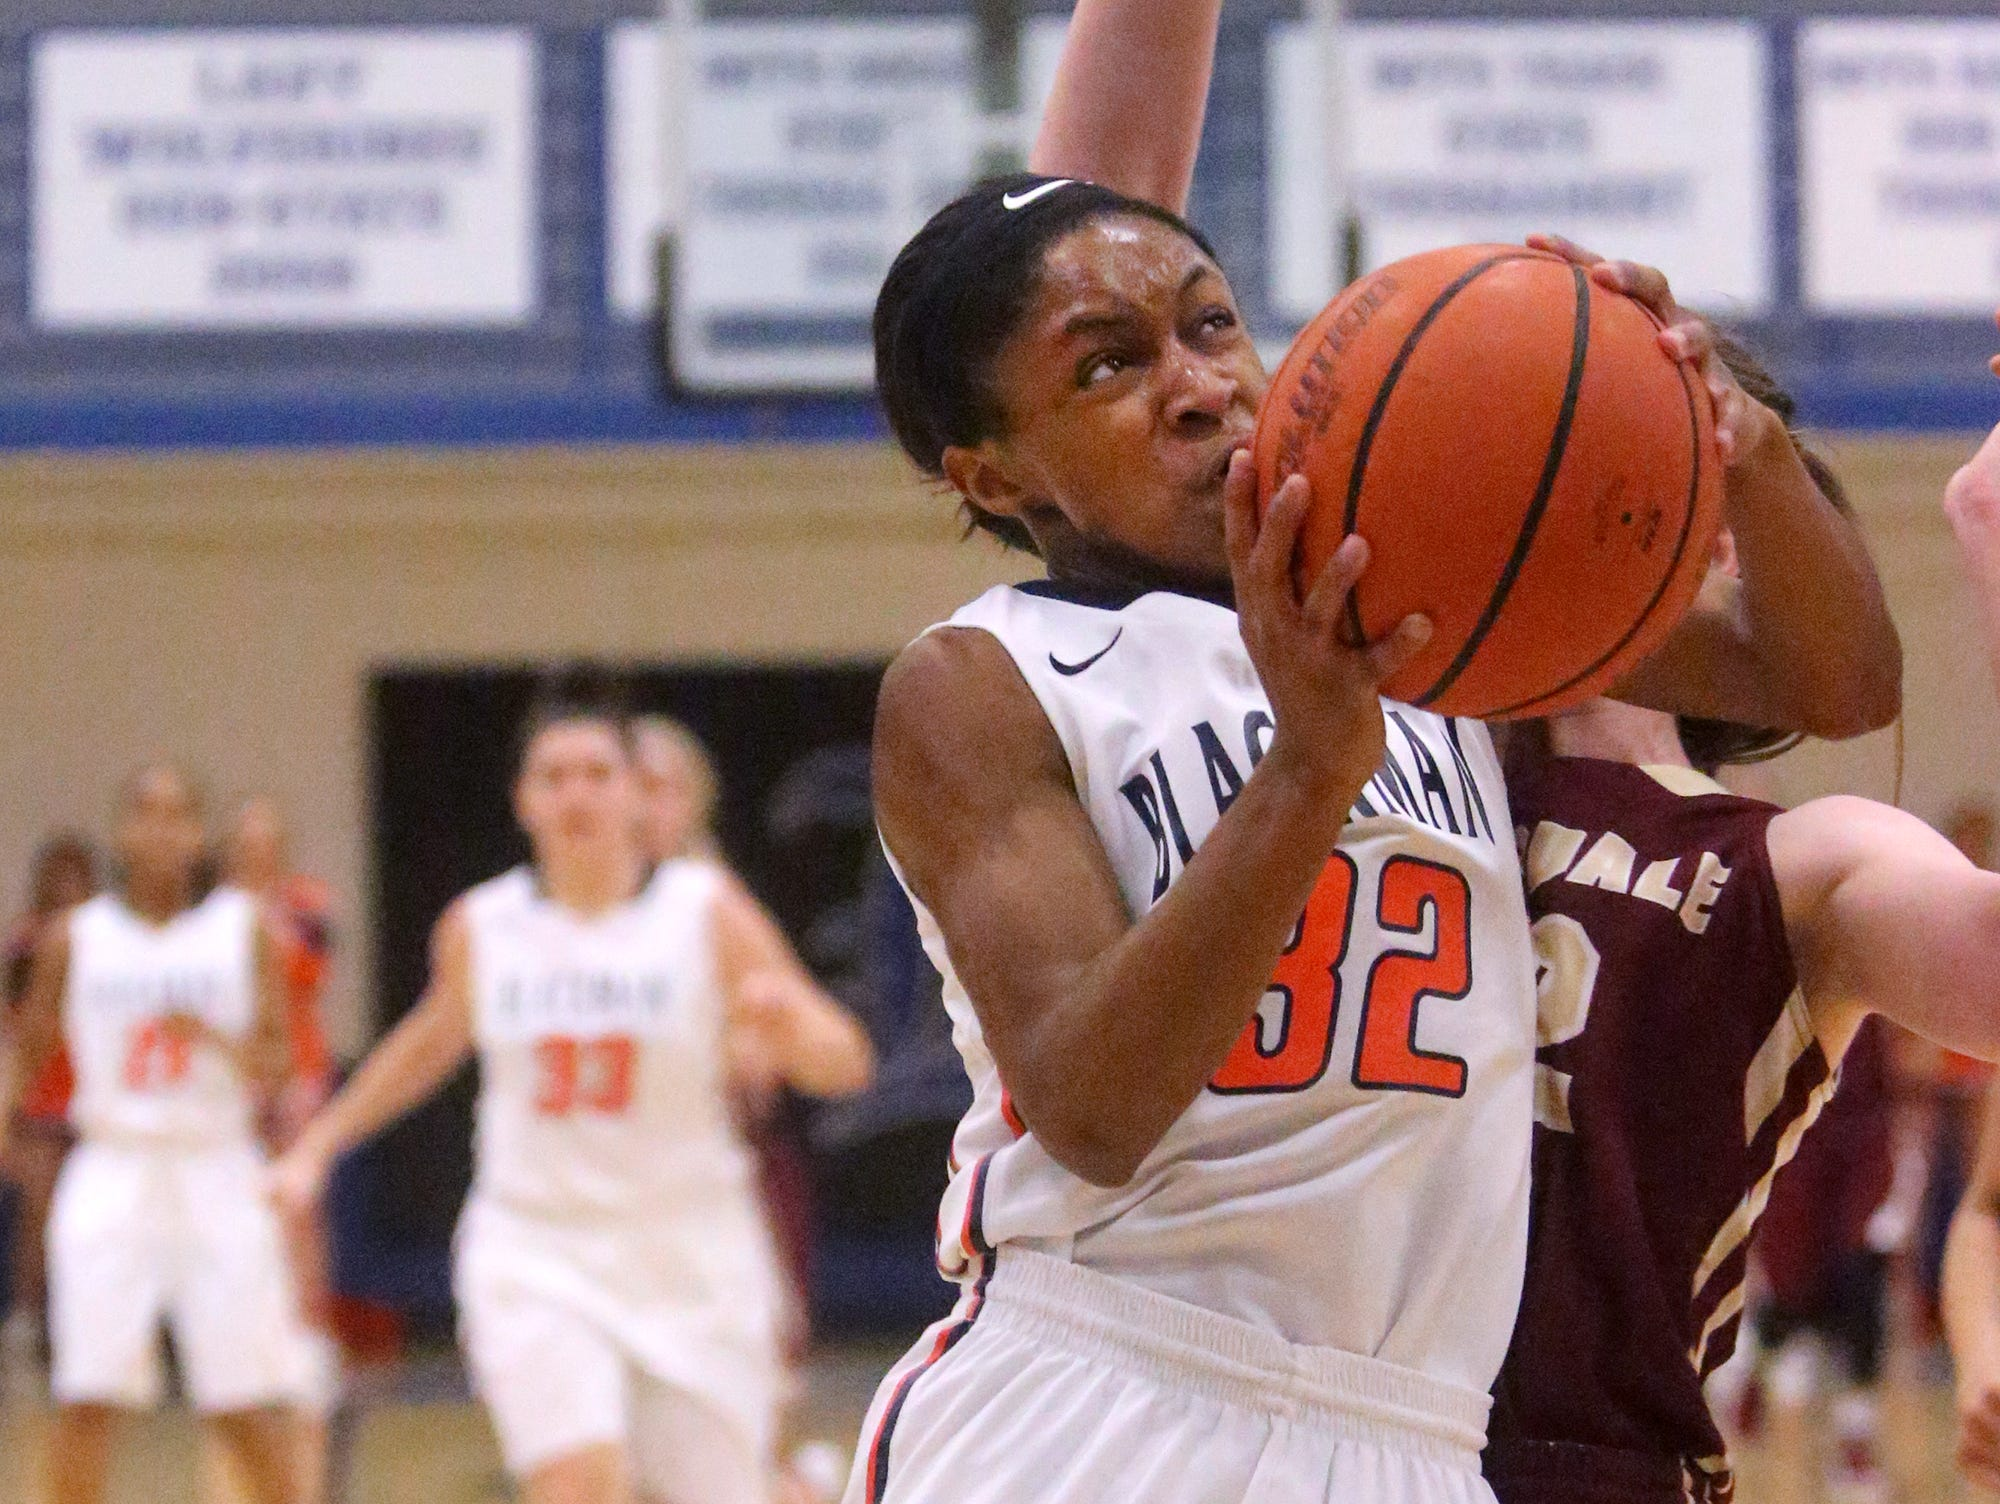 Blackman's Crystal Dangerfield (32) goes for a shot during the Region 4-AAA girls basketball semifinal game against Riverdale, on Monday, Feb. 29, 2016, at La Vergne.